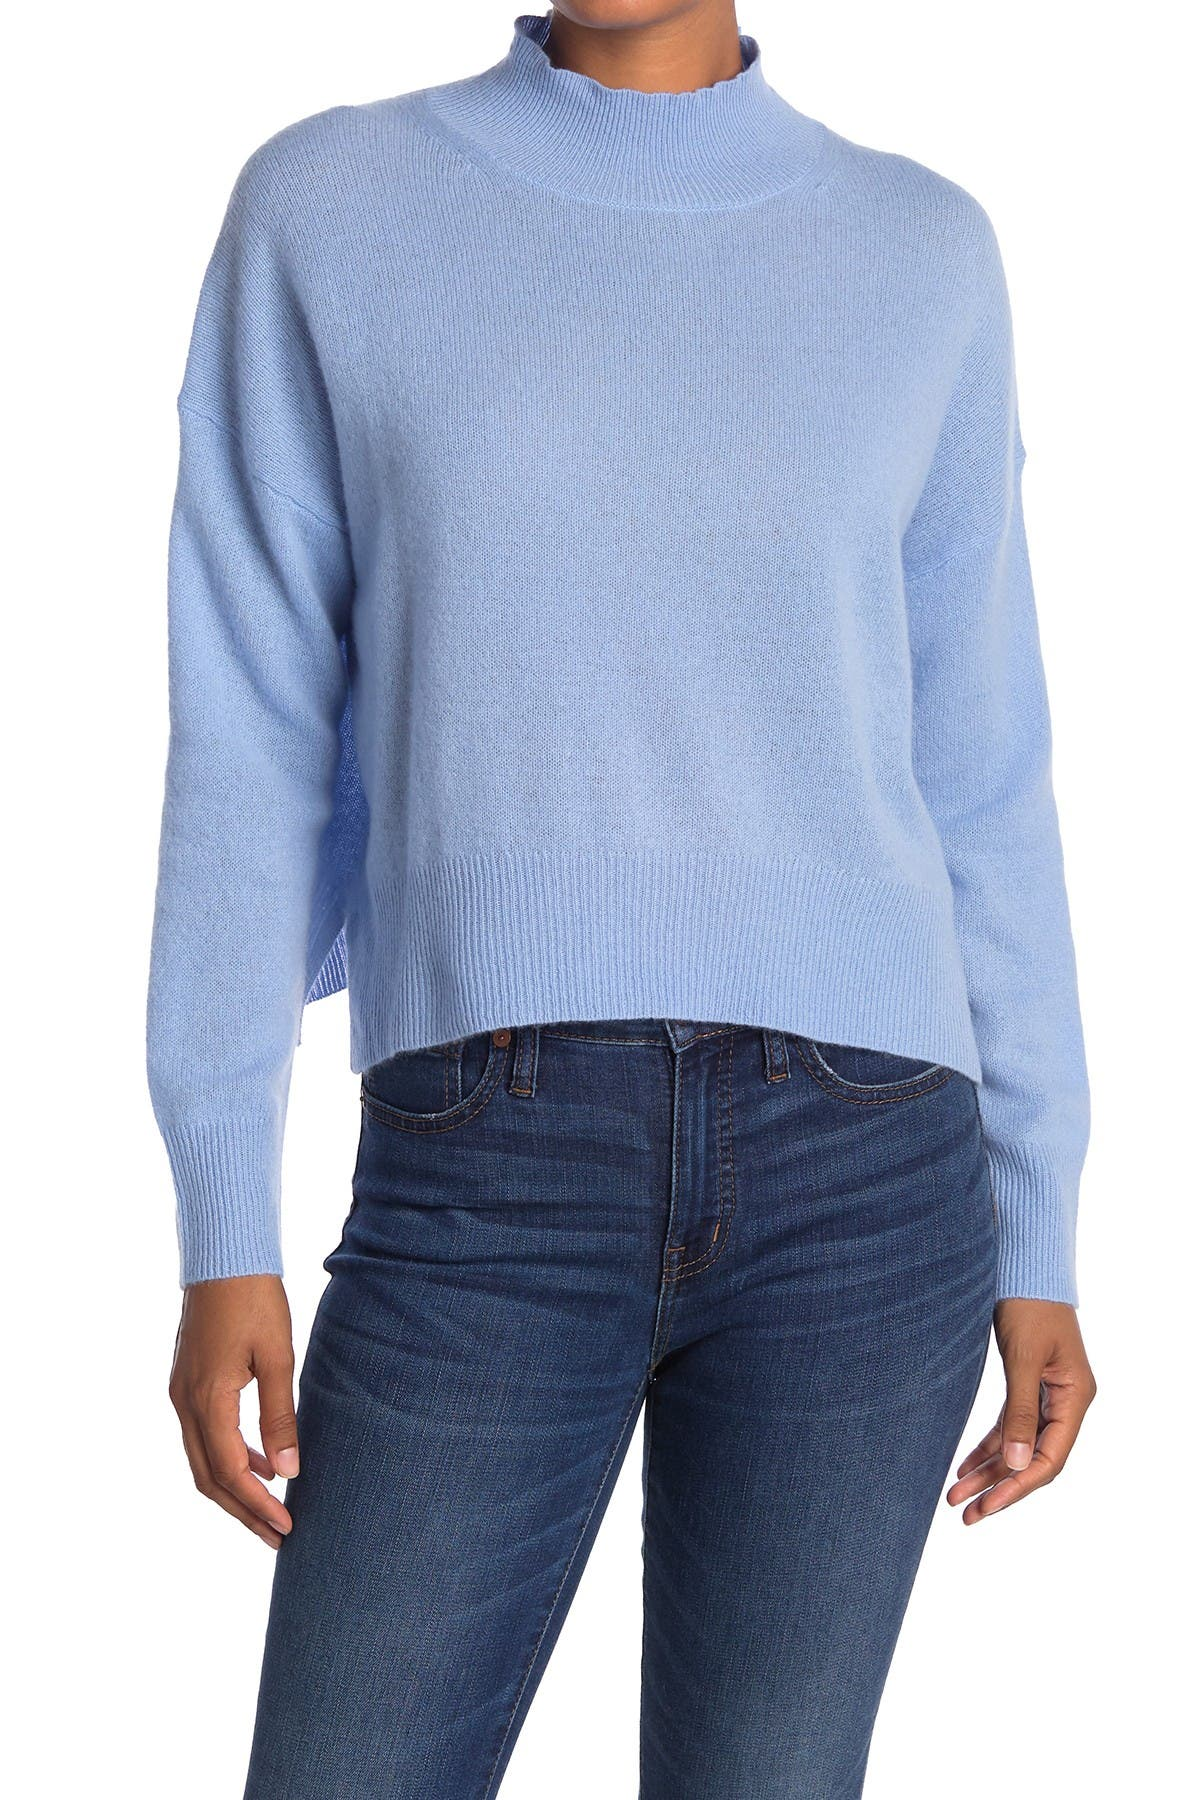 Image of 360 Cashmere Emily Mock Neck Cashmere Sweater